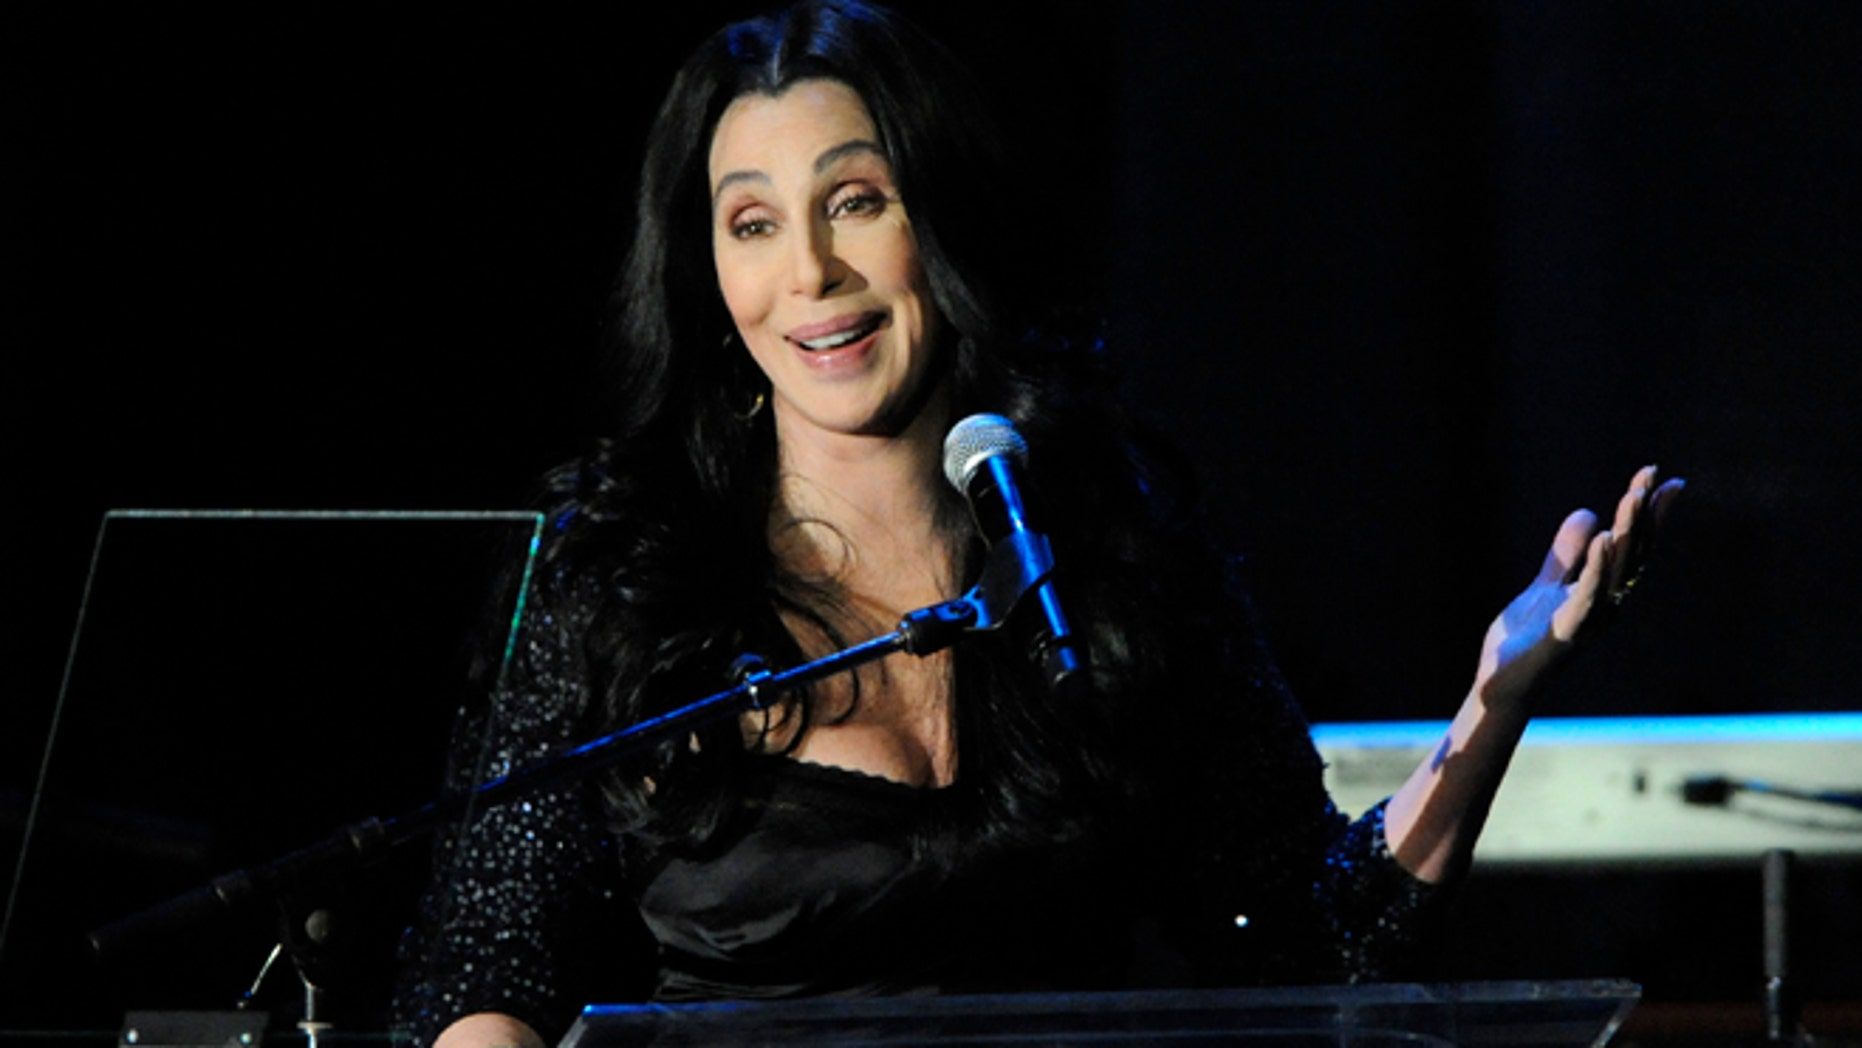 Cher speaks at the Pre-Grammy Gala & Salute to Industry Icons with Clive Davis honoring David Geffen held in Beverly Hills, California on February 12, 2011.